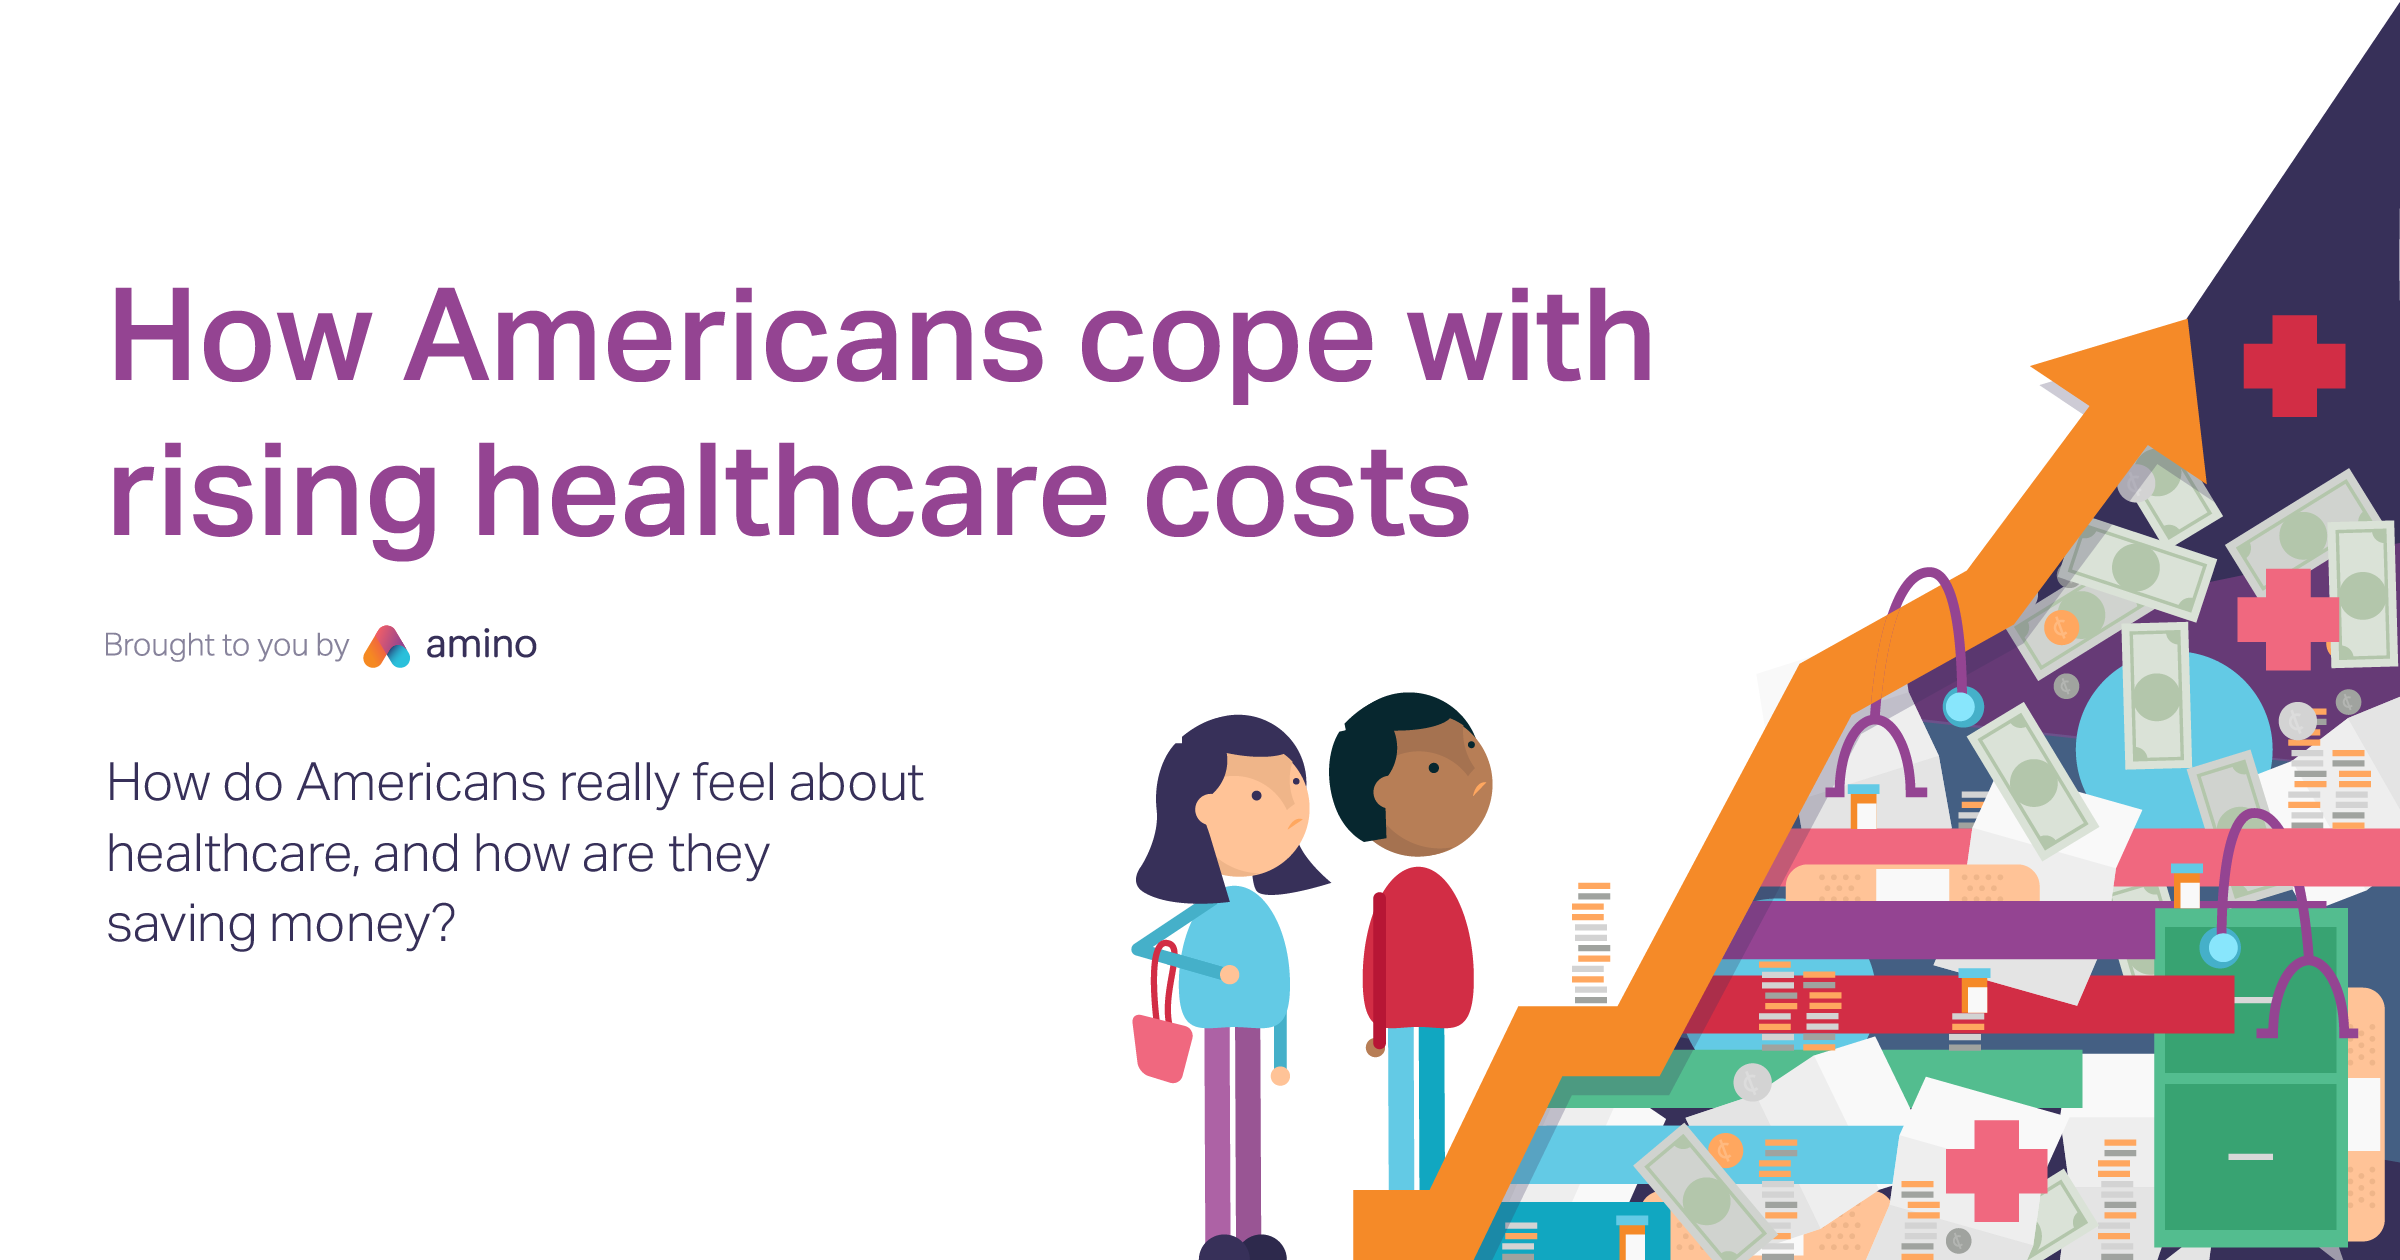 Survey shows Americans are seriously worried about healthcare costs